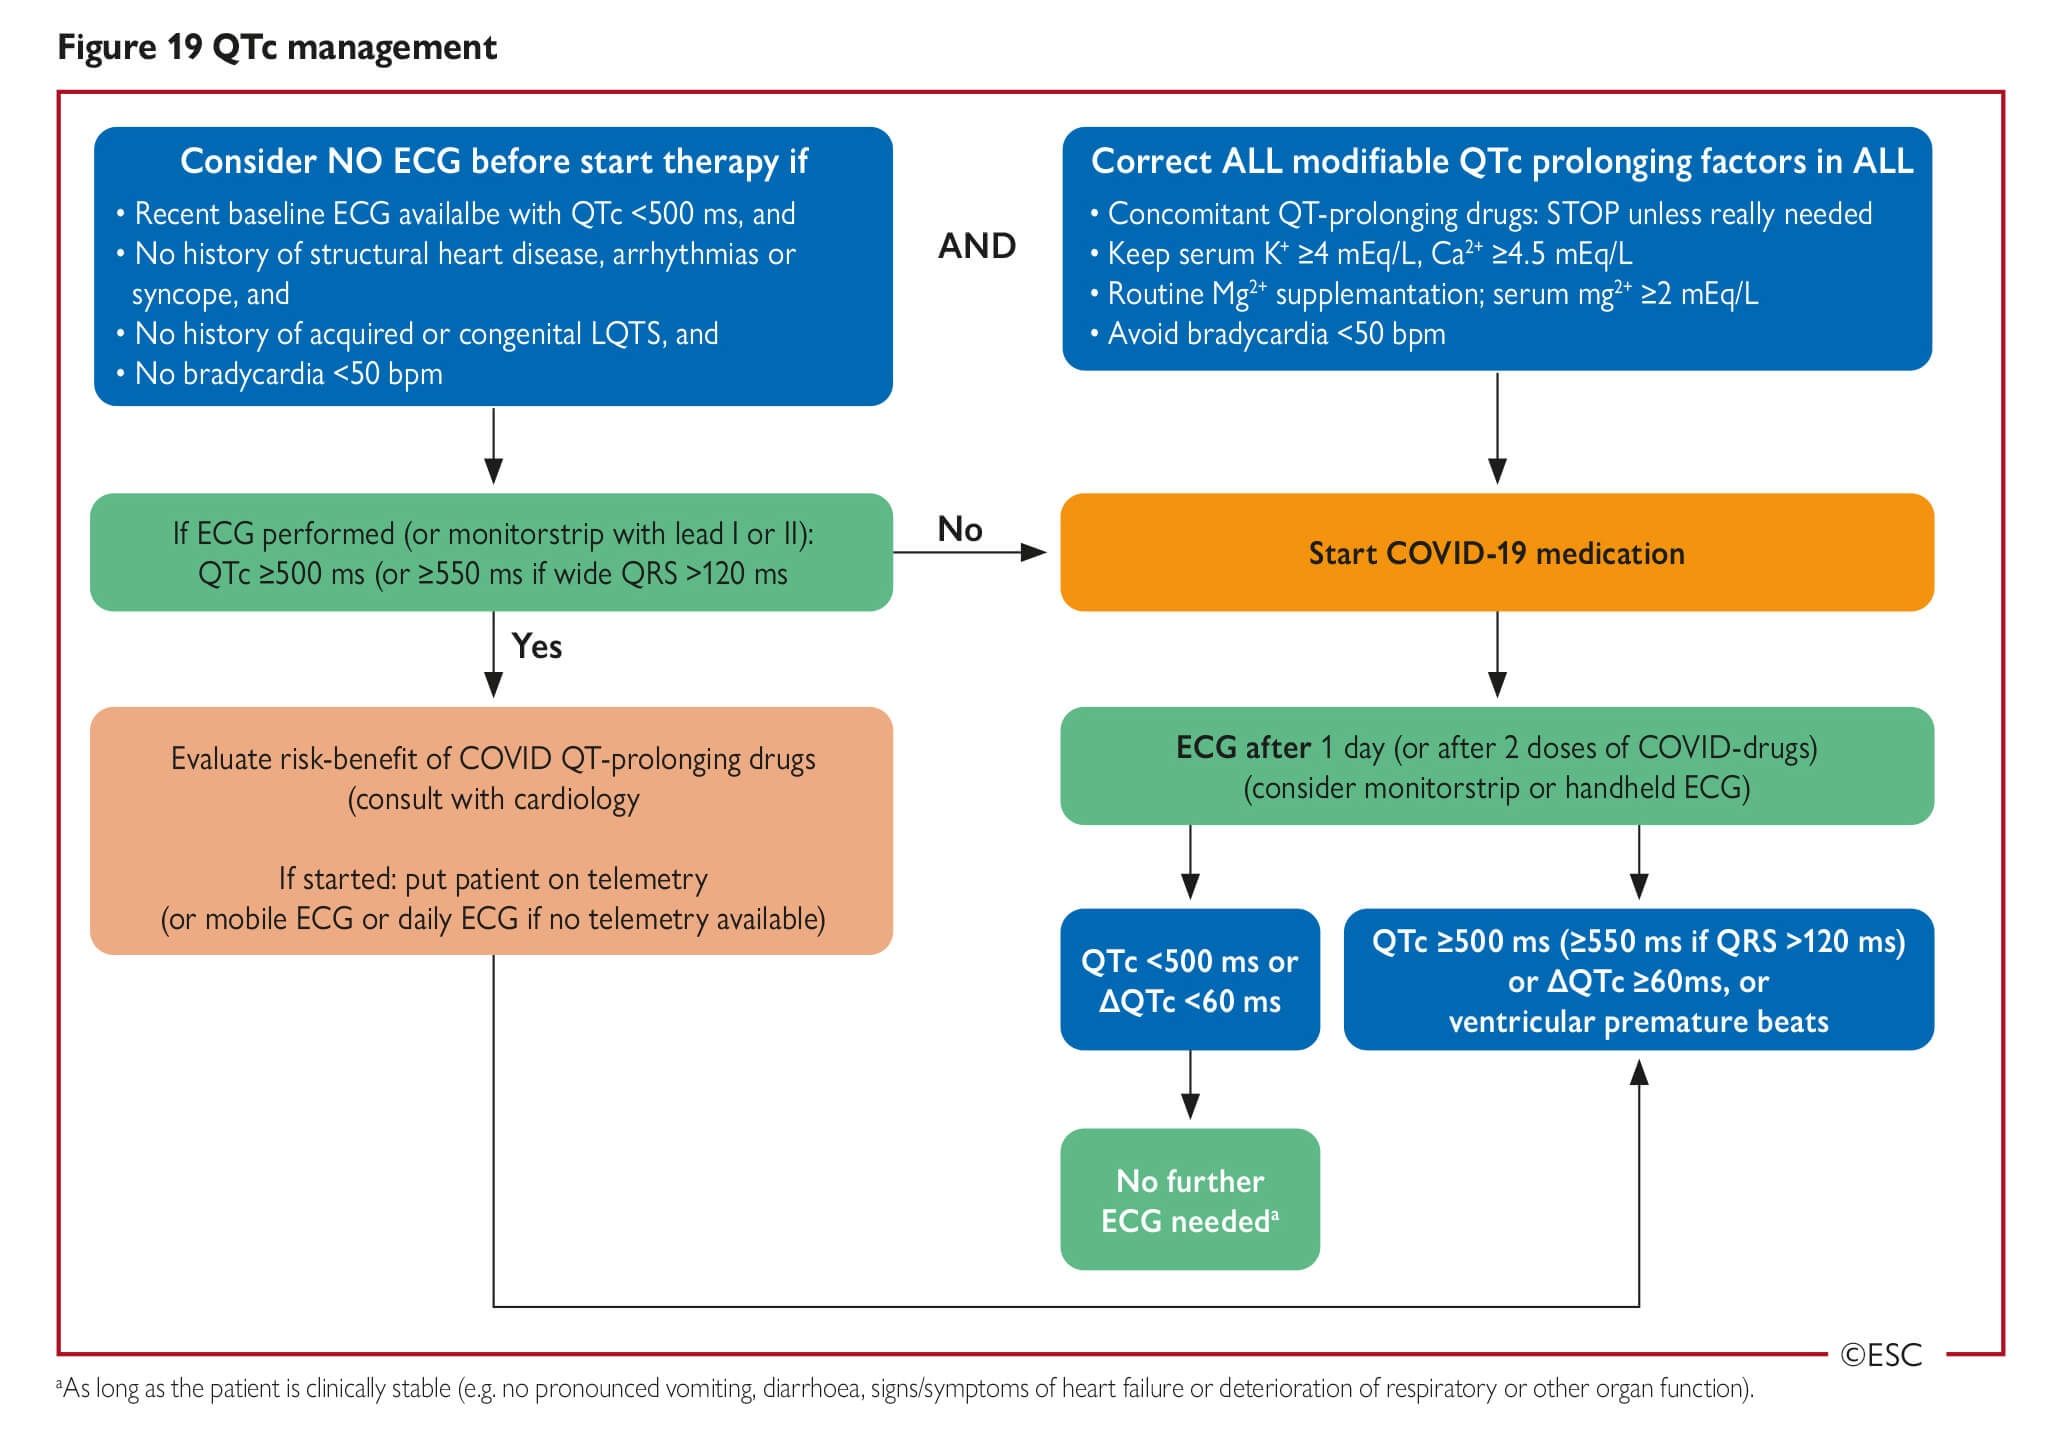 Esc Guidance For The Diagnosis And Management Of Cv Disease During The Covid 19 Pandemic